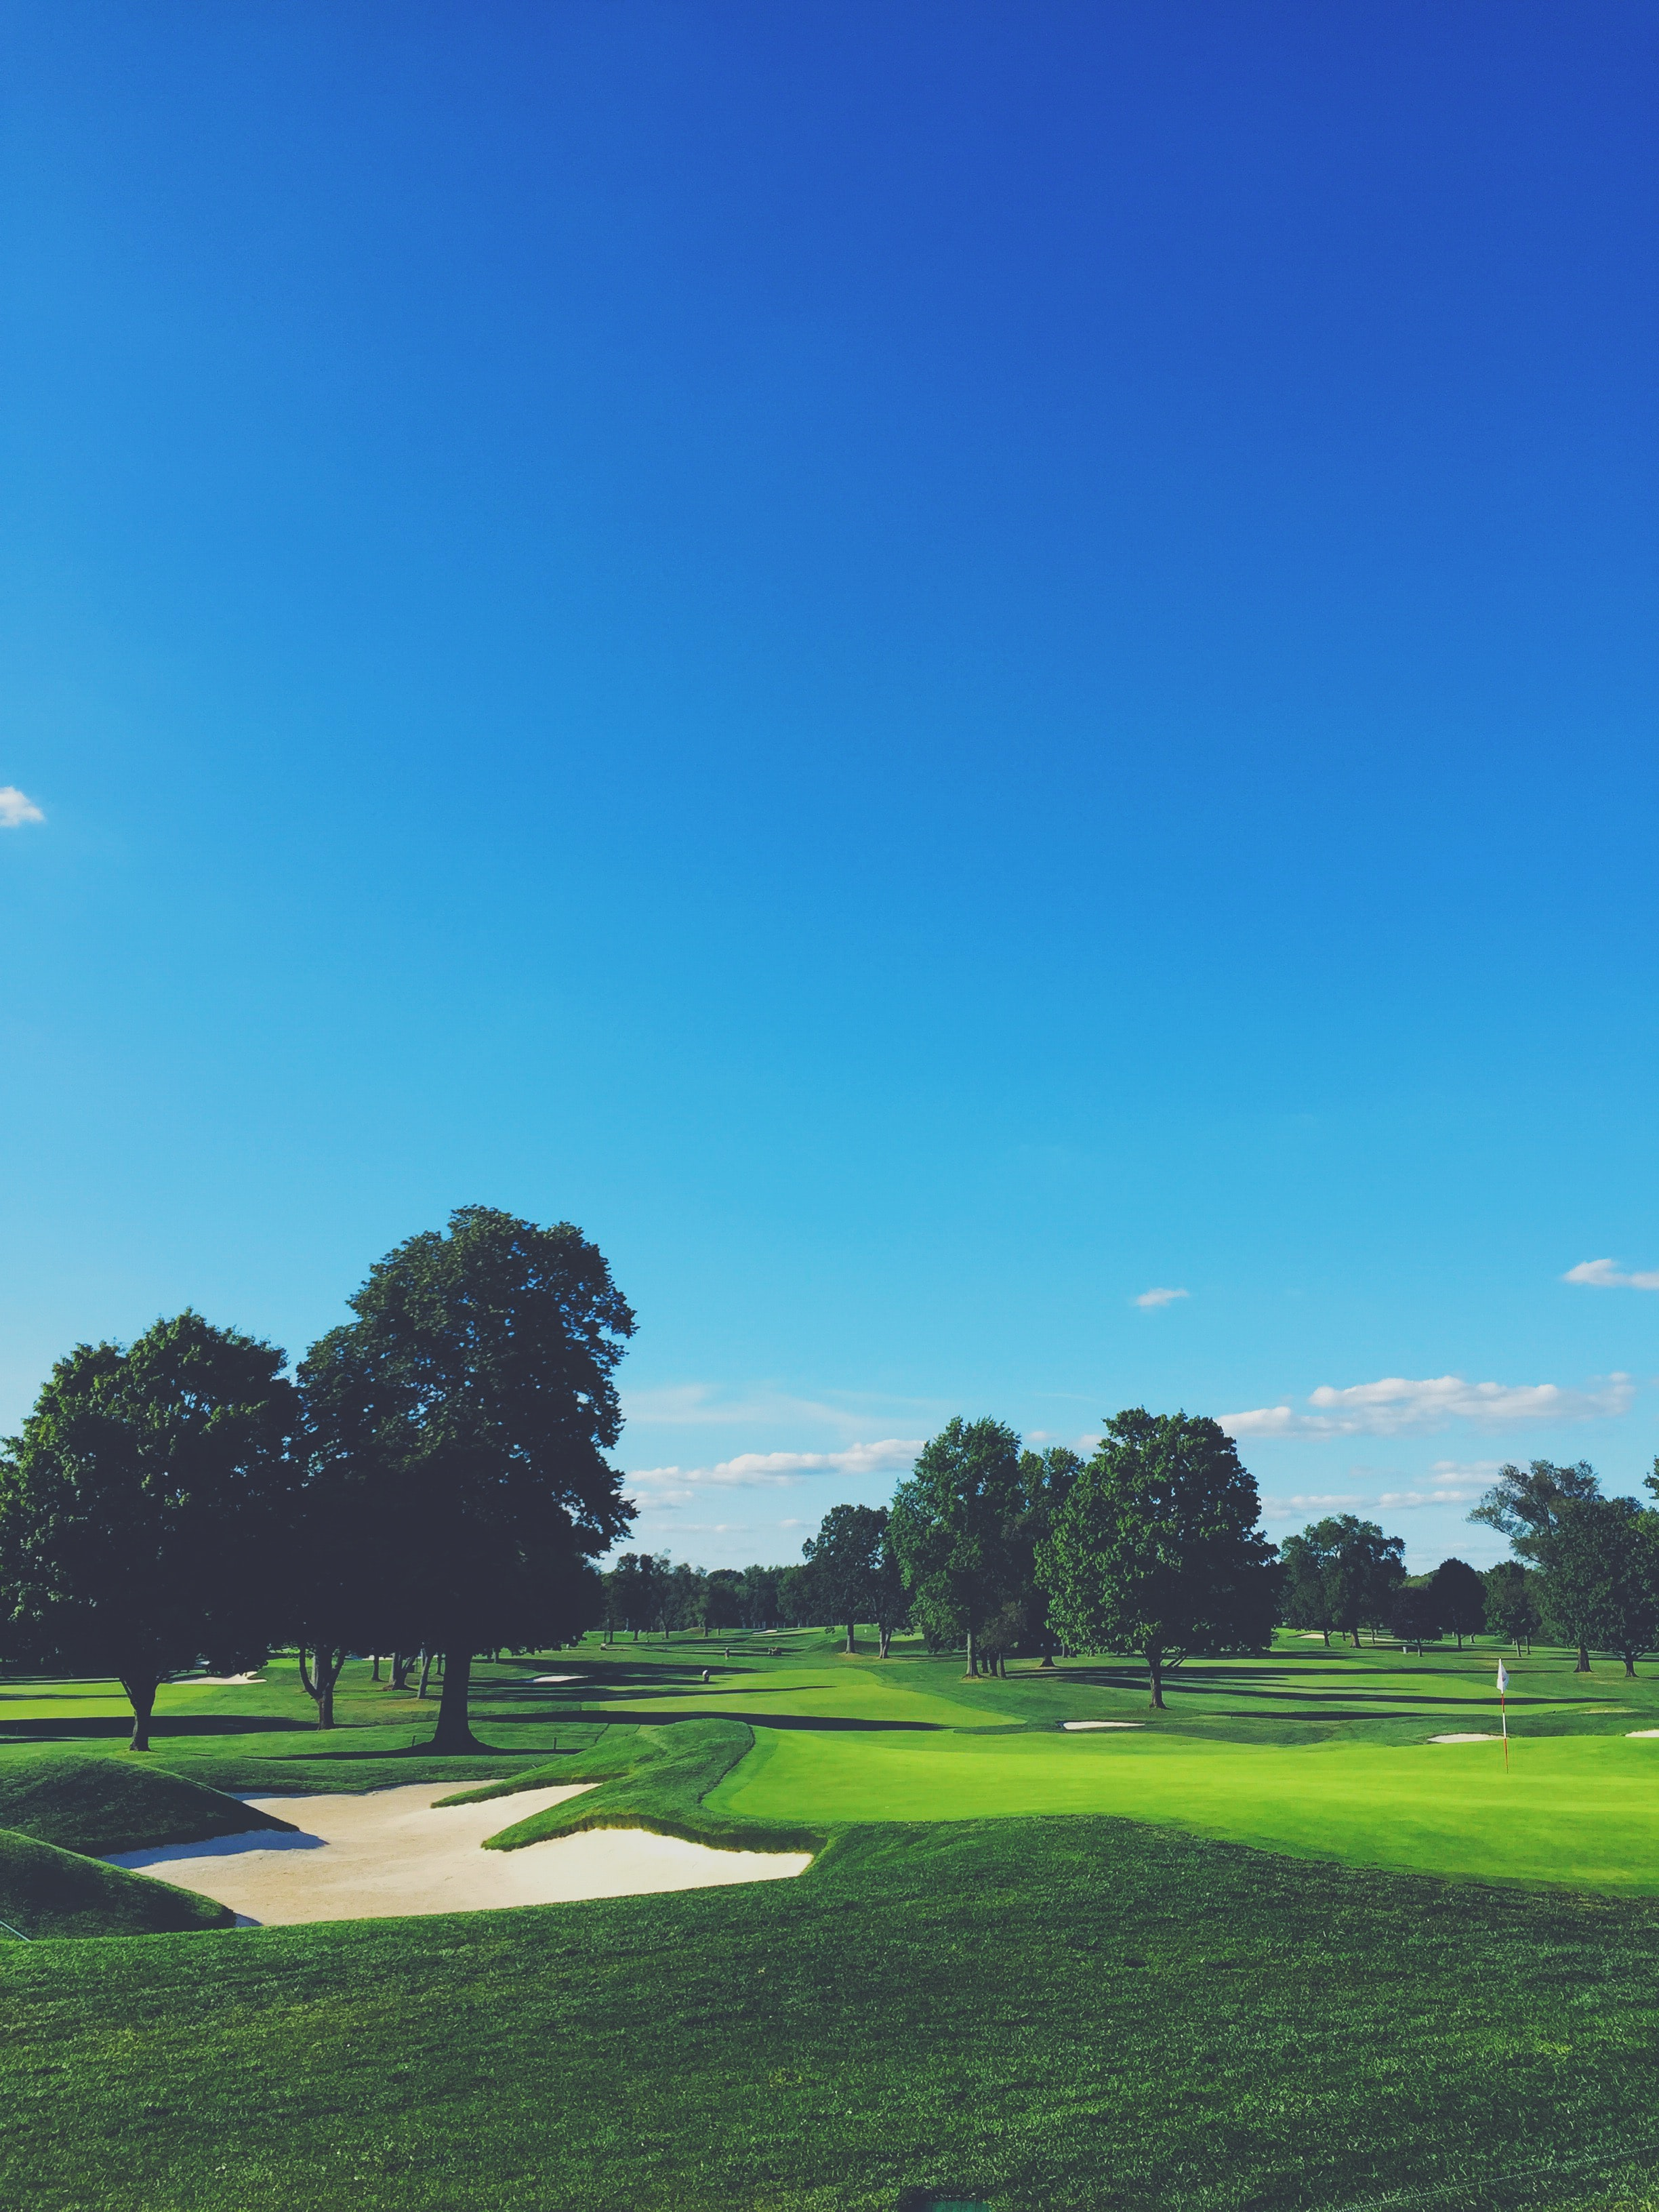 A shot from the grass at Winged Foot Golf Club